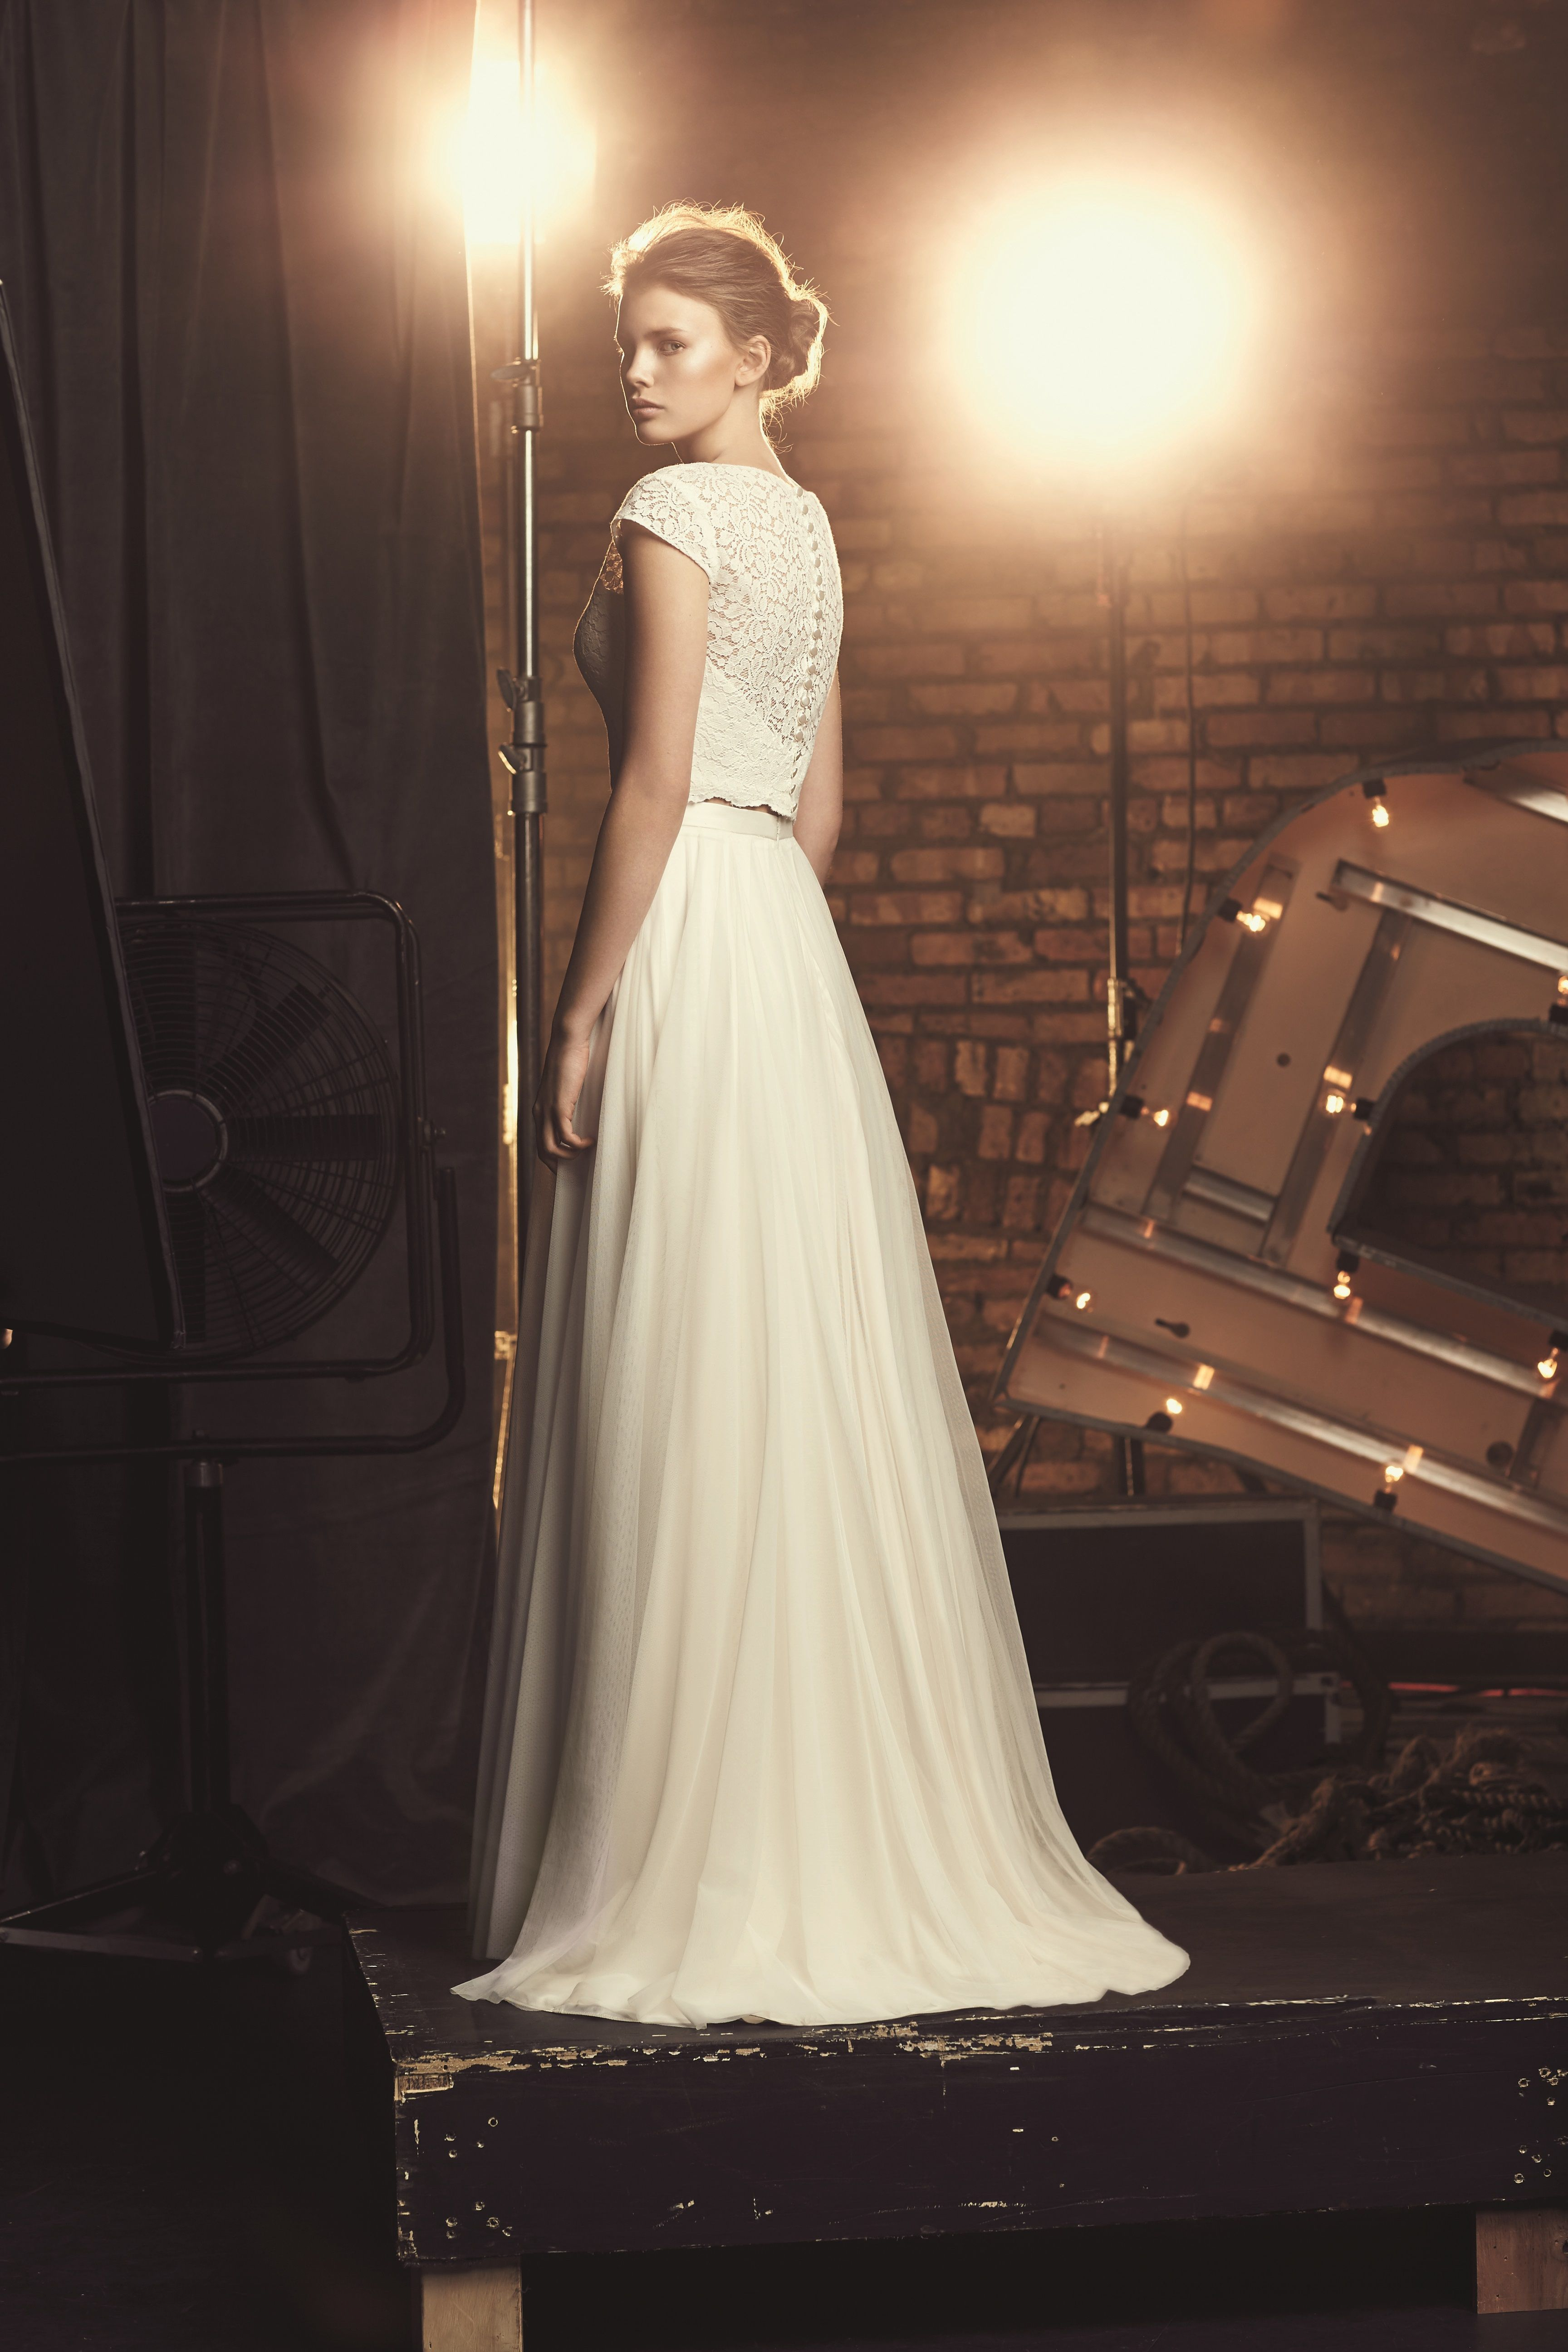 Unique style wedding dresses  Buy Mikaella bridal only at Cocoa Couture in Hershey Pennsylvania